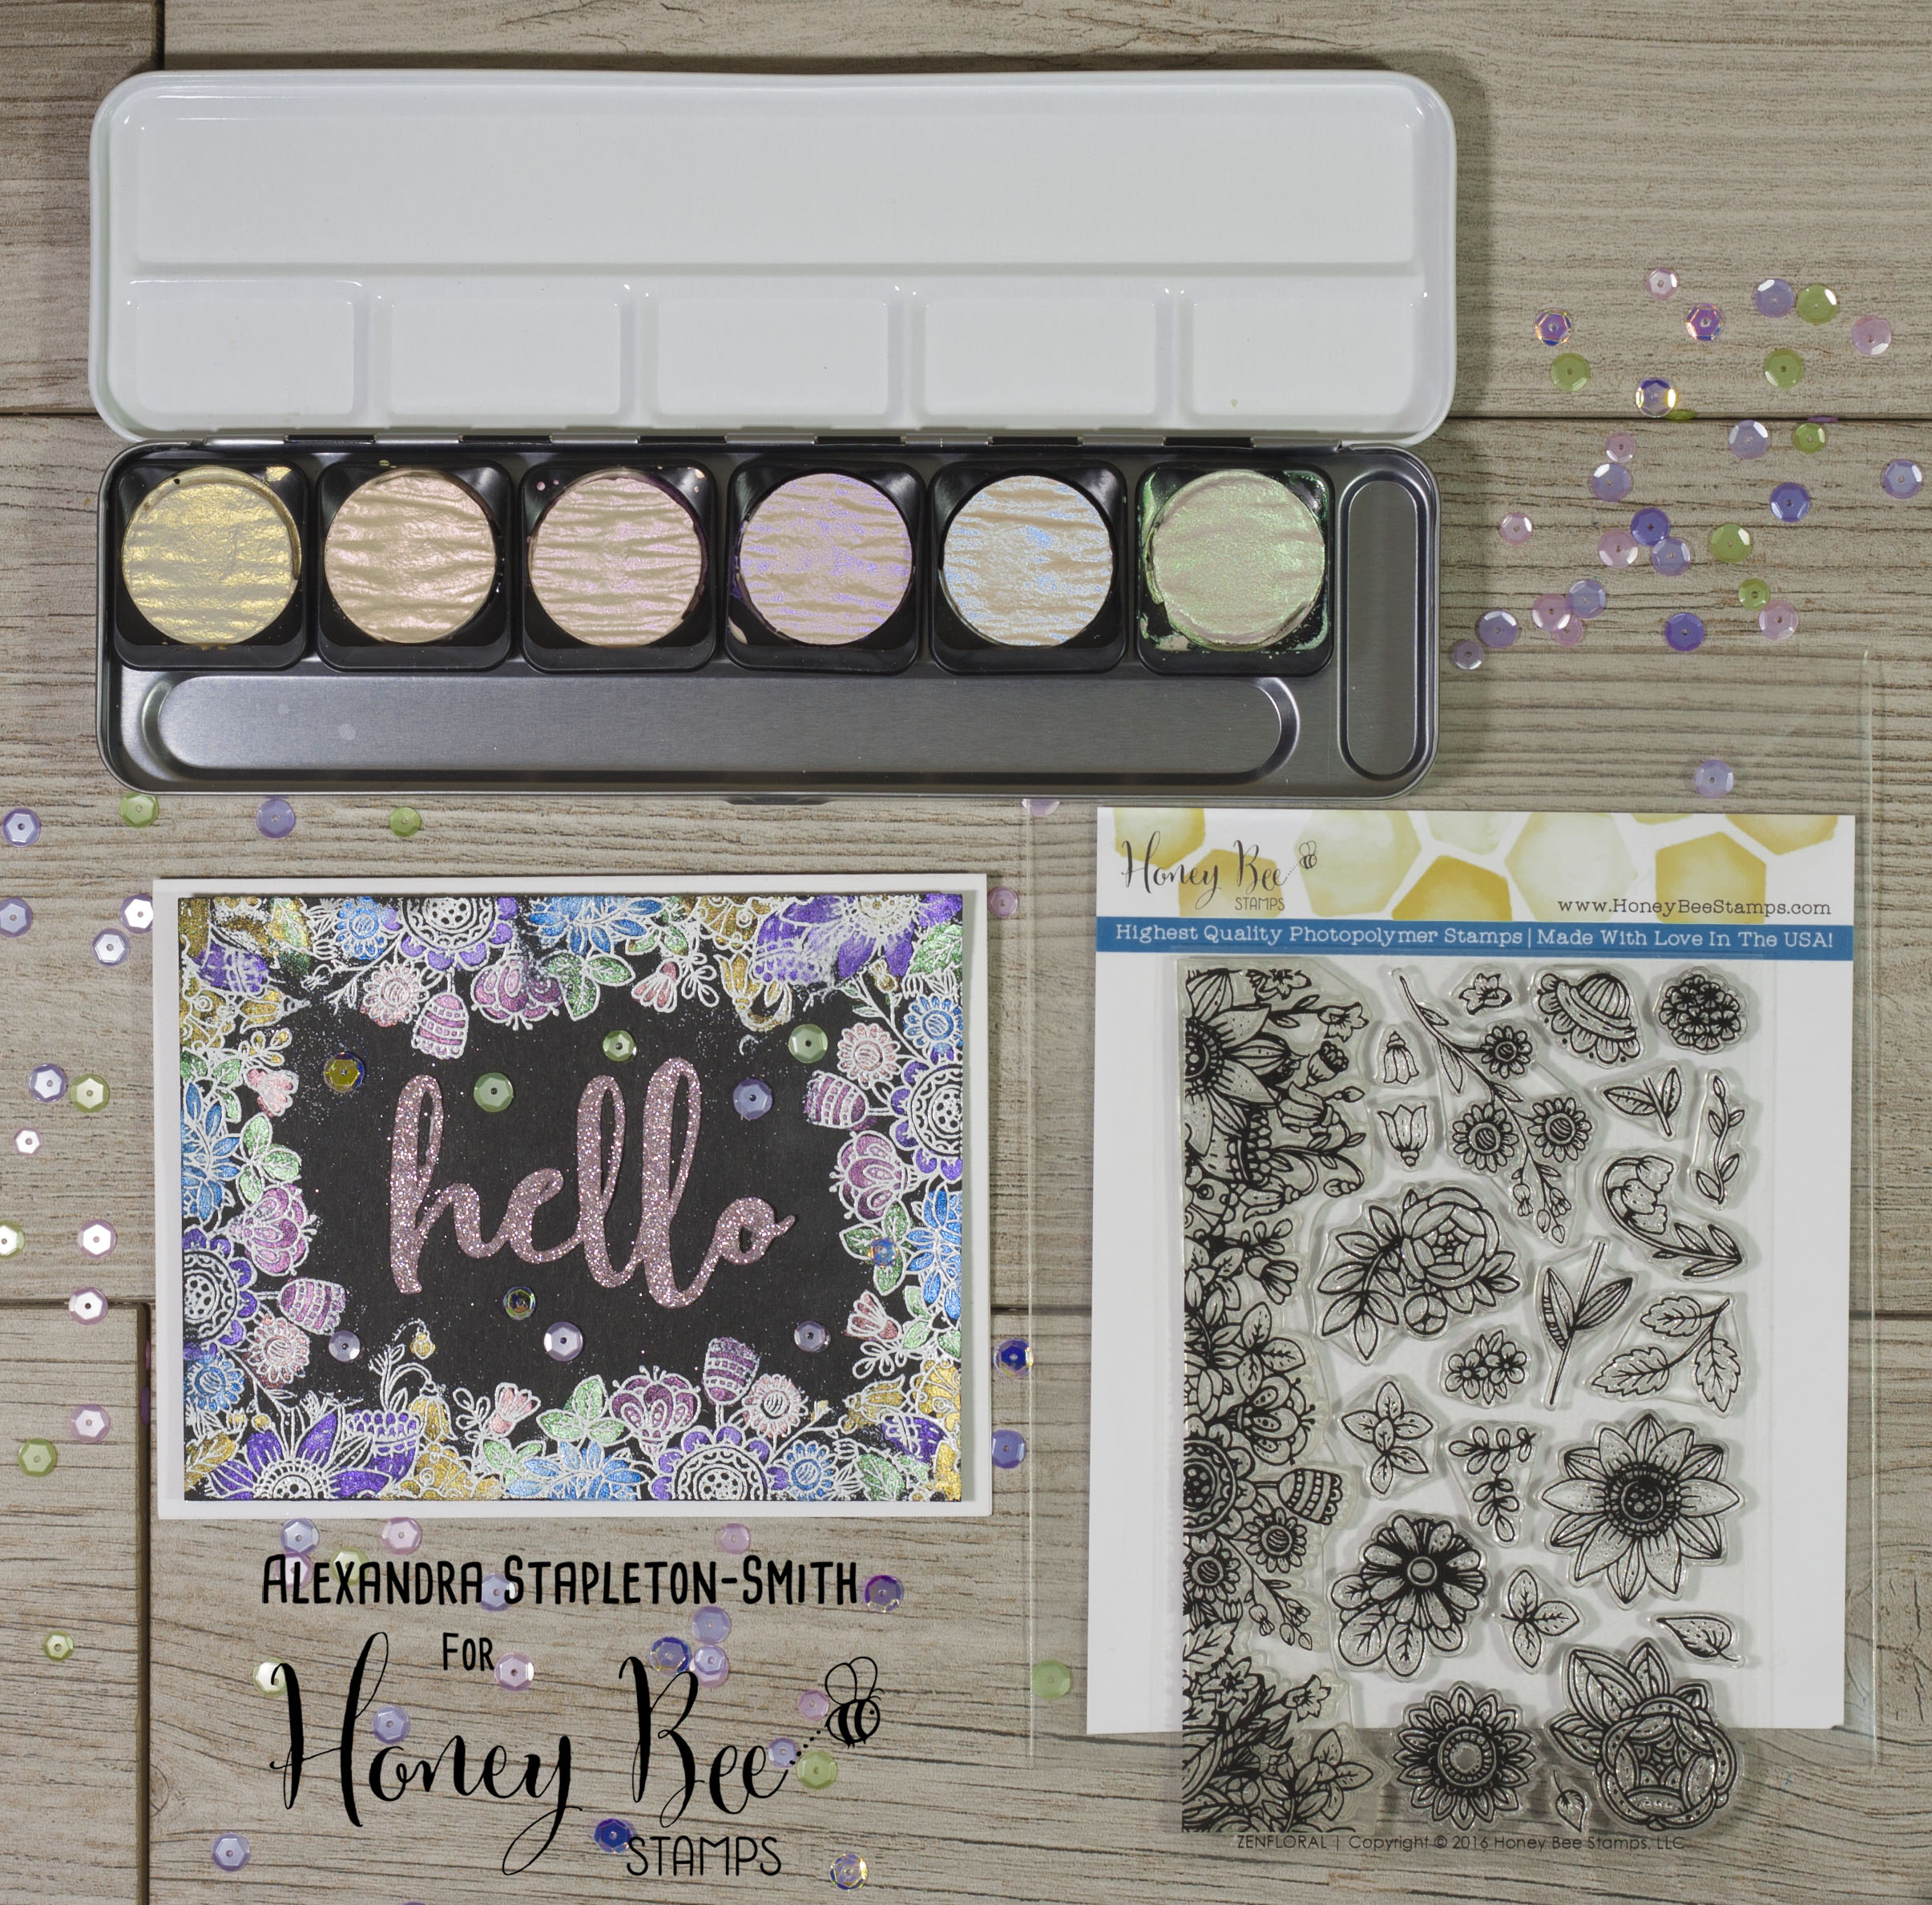 Zen corners and bling from Honey Bee Stamps!